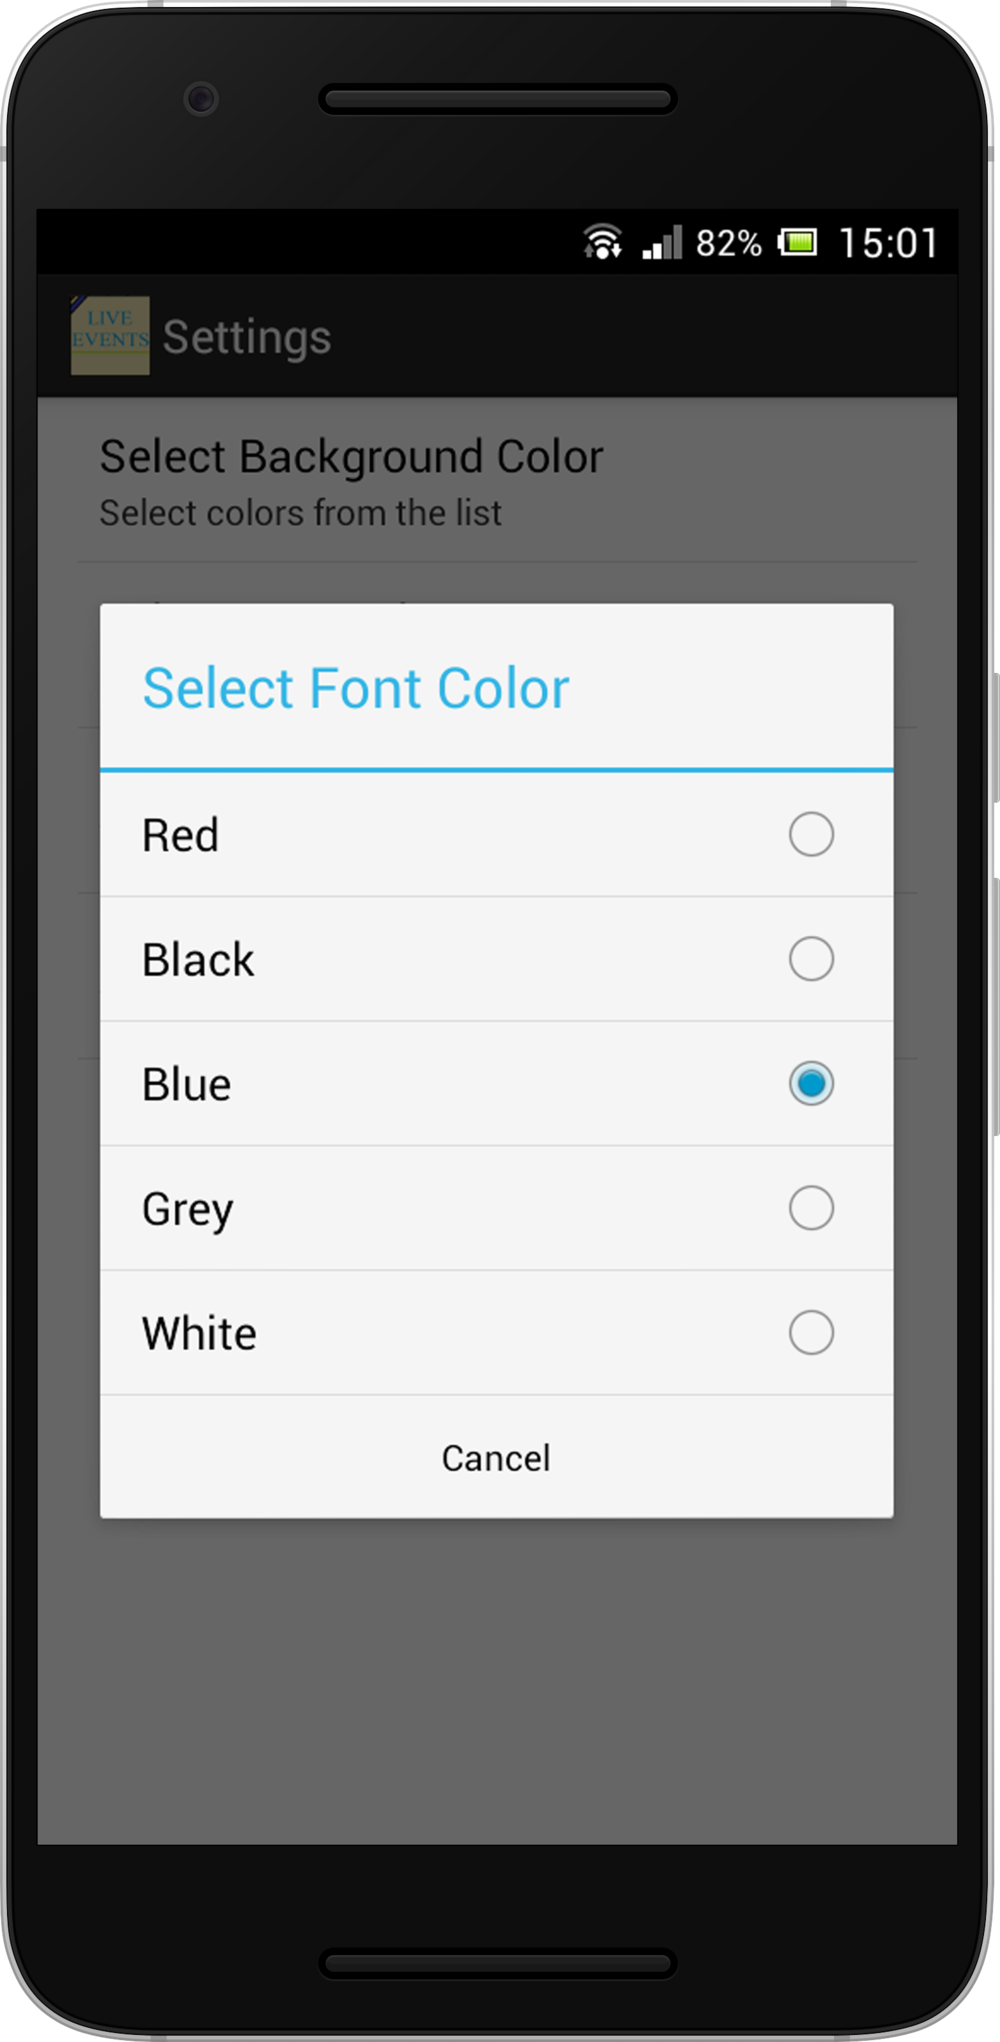 Preference - To select Font Color